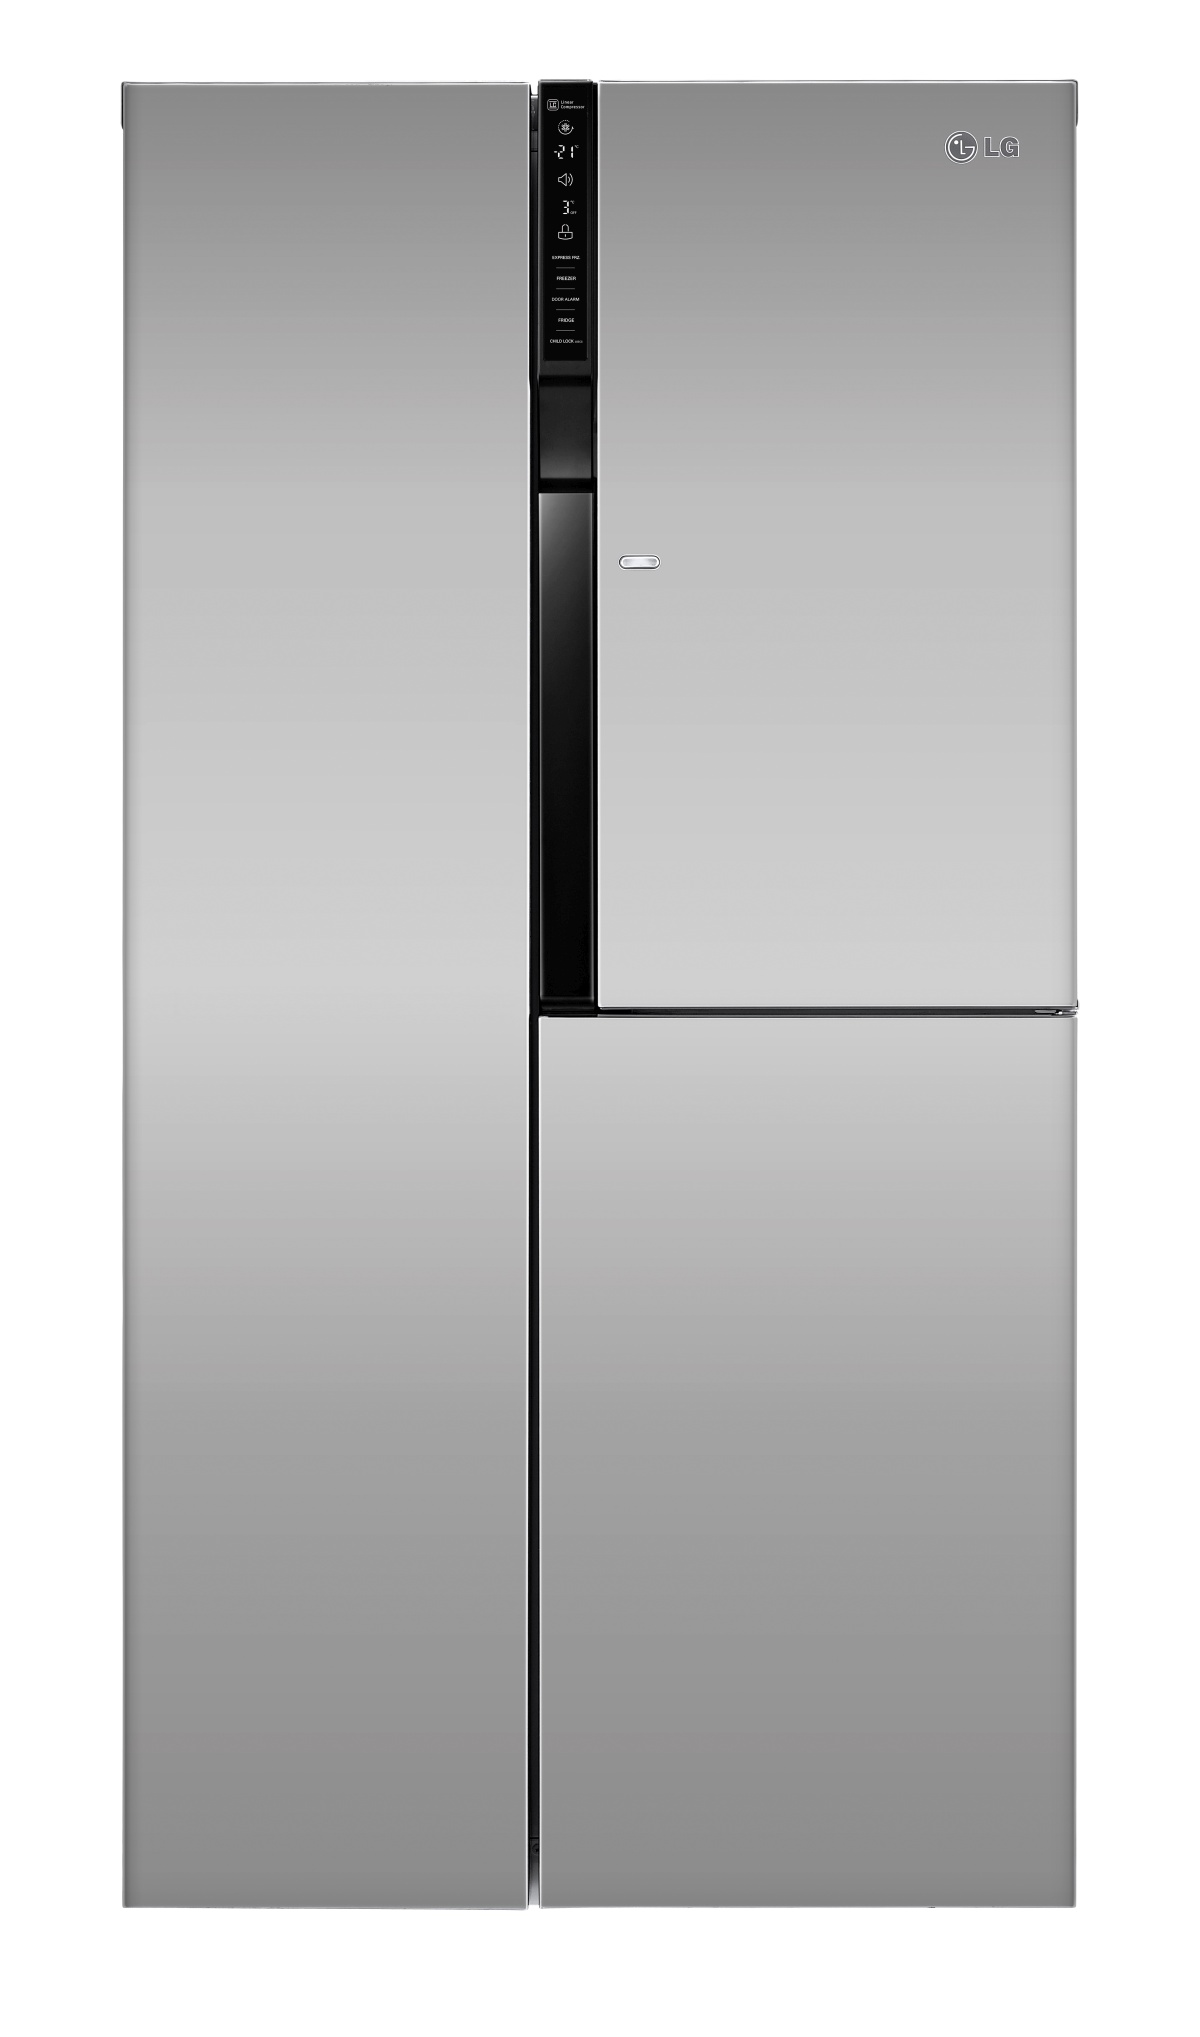 lg k hlschrank gs 9366 pzqzm side by side ger t door in door. Black Bedroom Furniture Sets. Home Design Ideas